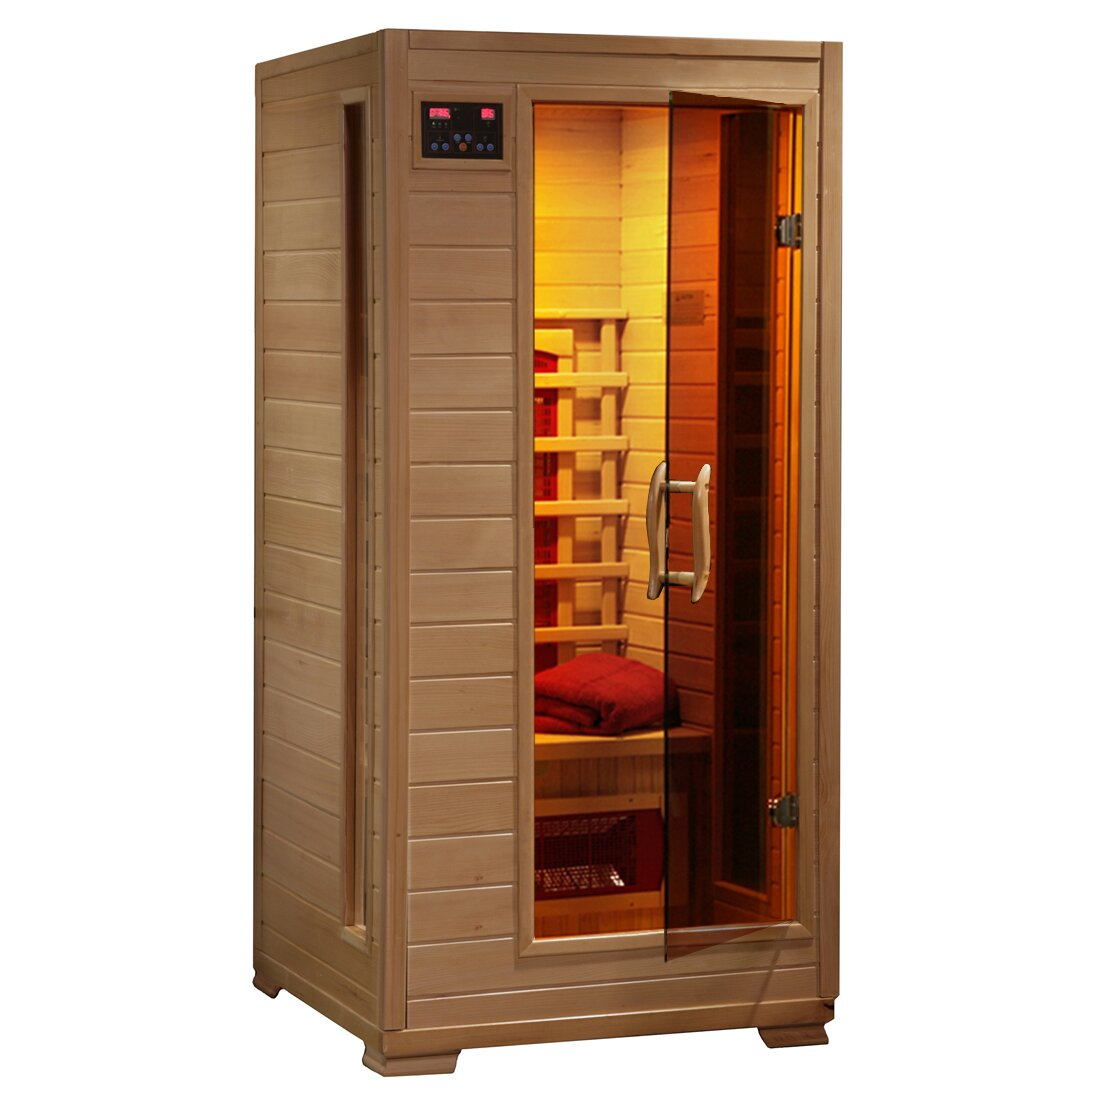 radiant saunas 1 2 person ceramic far infrared sauna w 3 ceramic heaters reviews wayfair. Black Bedroom Furniture Sets. Home Design Ideas